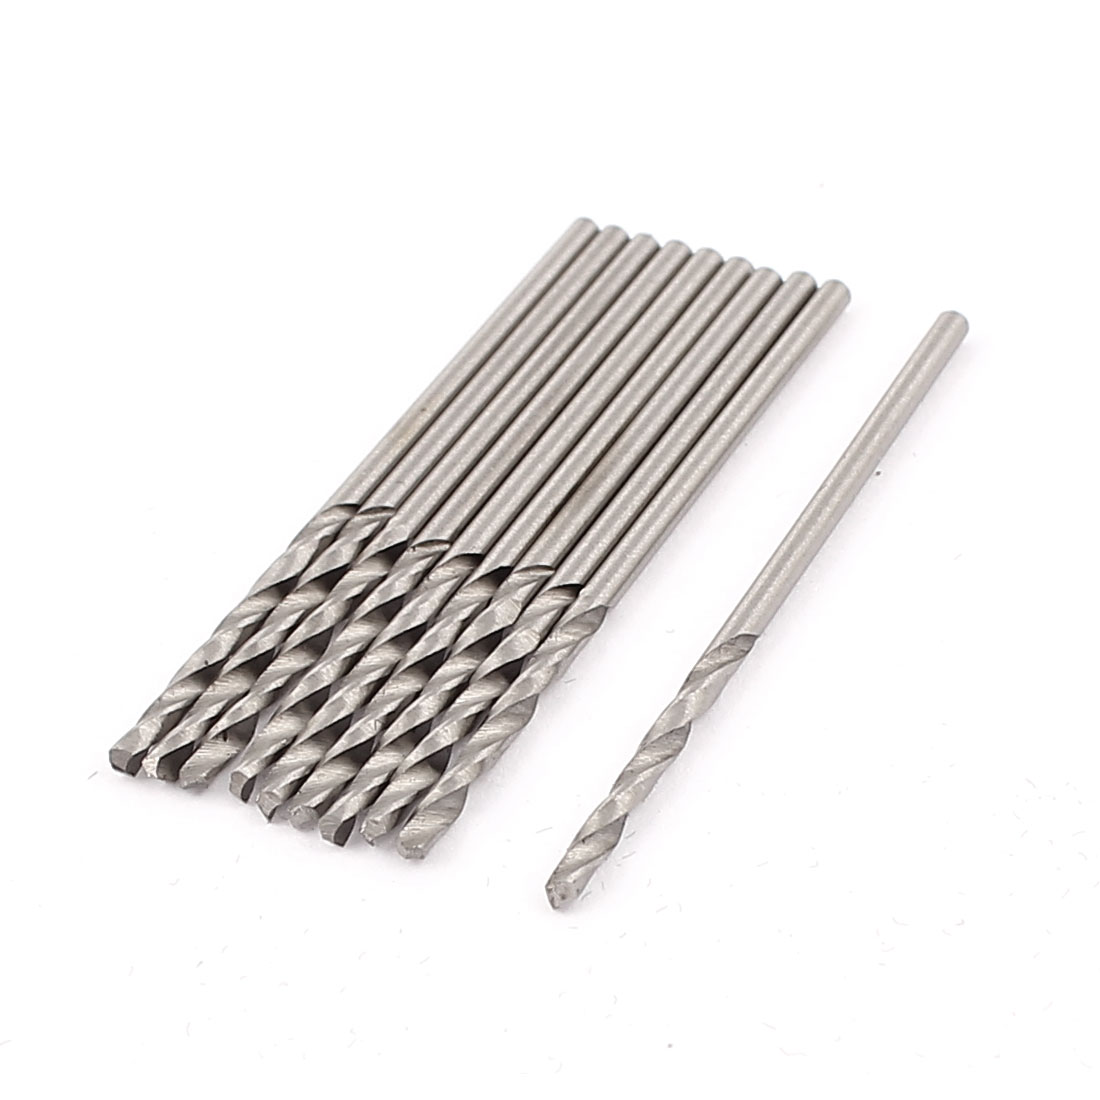 10 Pcs 1.5mm Dia Split Point Straight Shank Twist Drilling Drill Bits